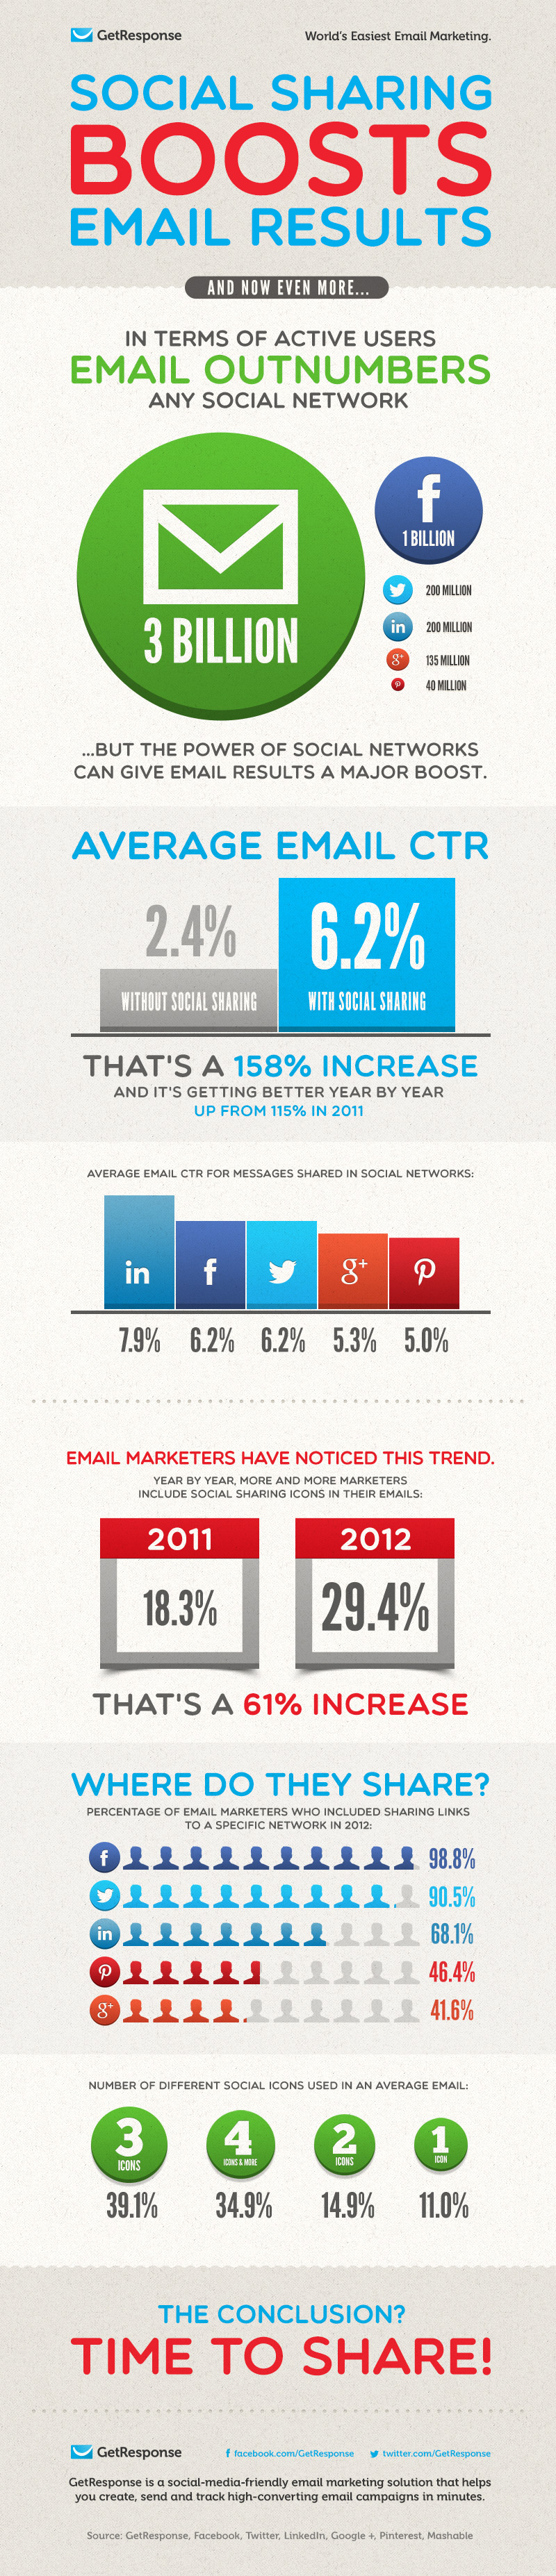 Social sharing boost email